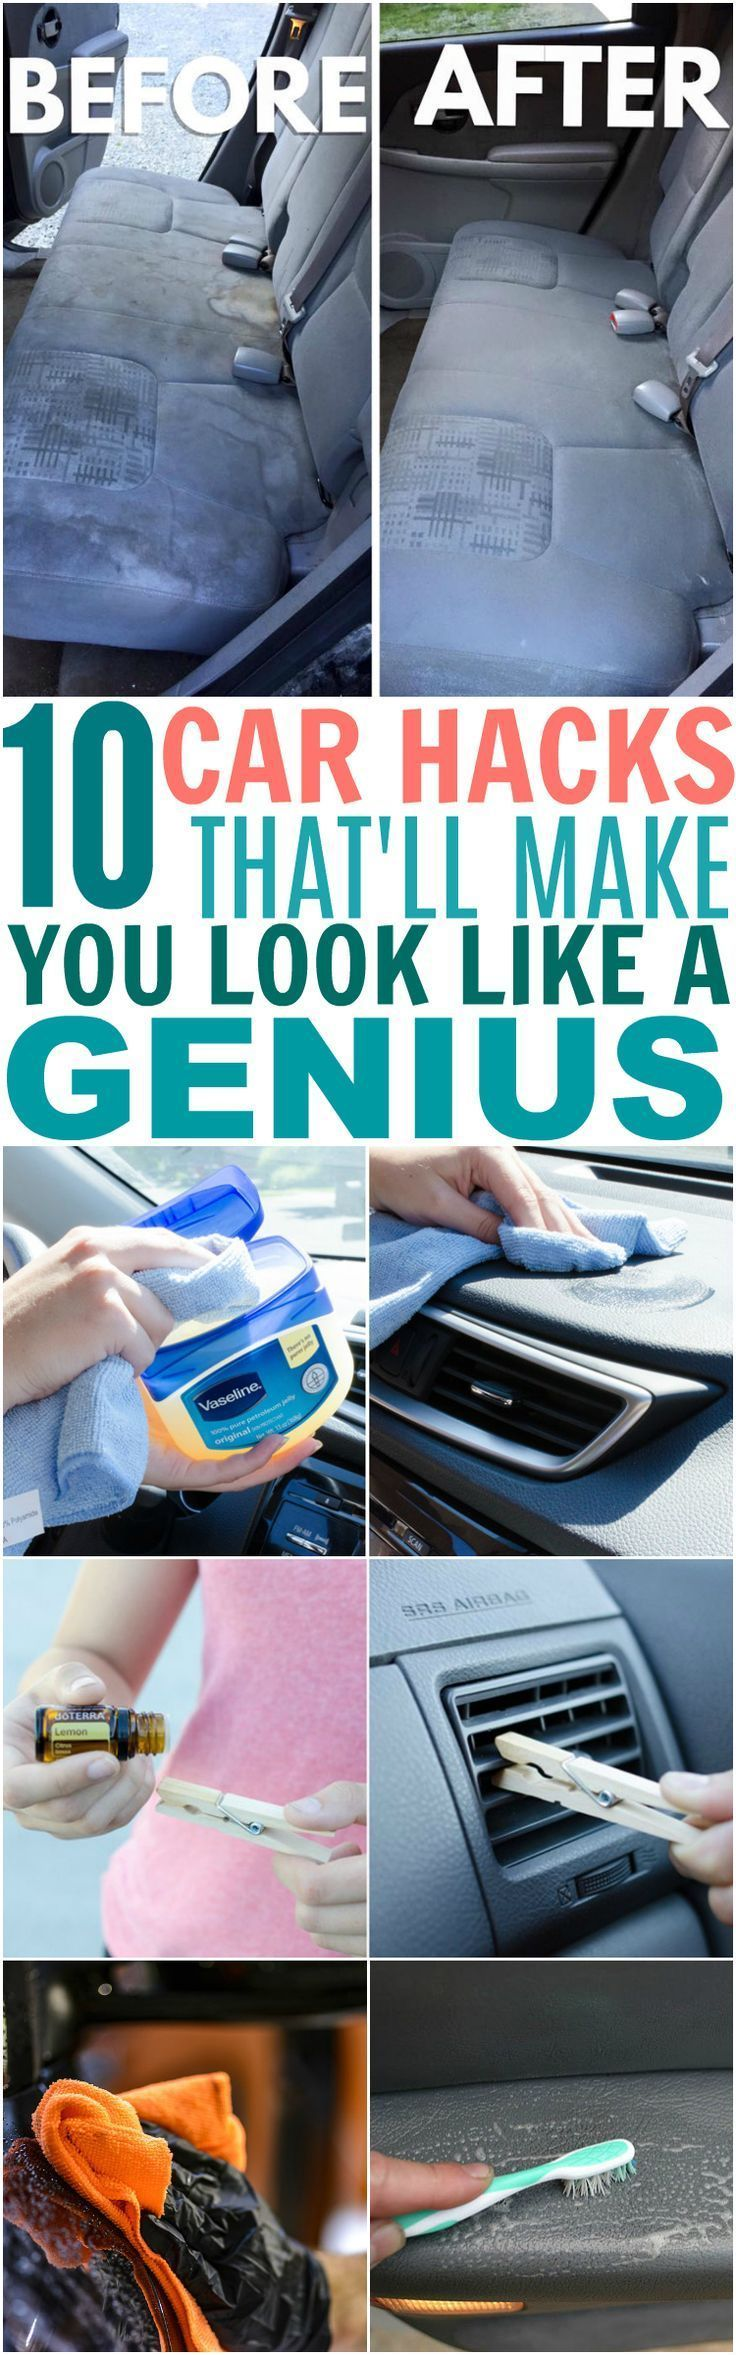 12 totally brilliant car cleaning hacks to keep your car looking new vaseline fur and essentials. Black Bedroom Furniture Sets. Home Design Ideas